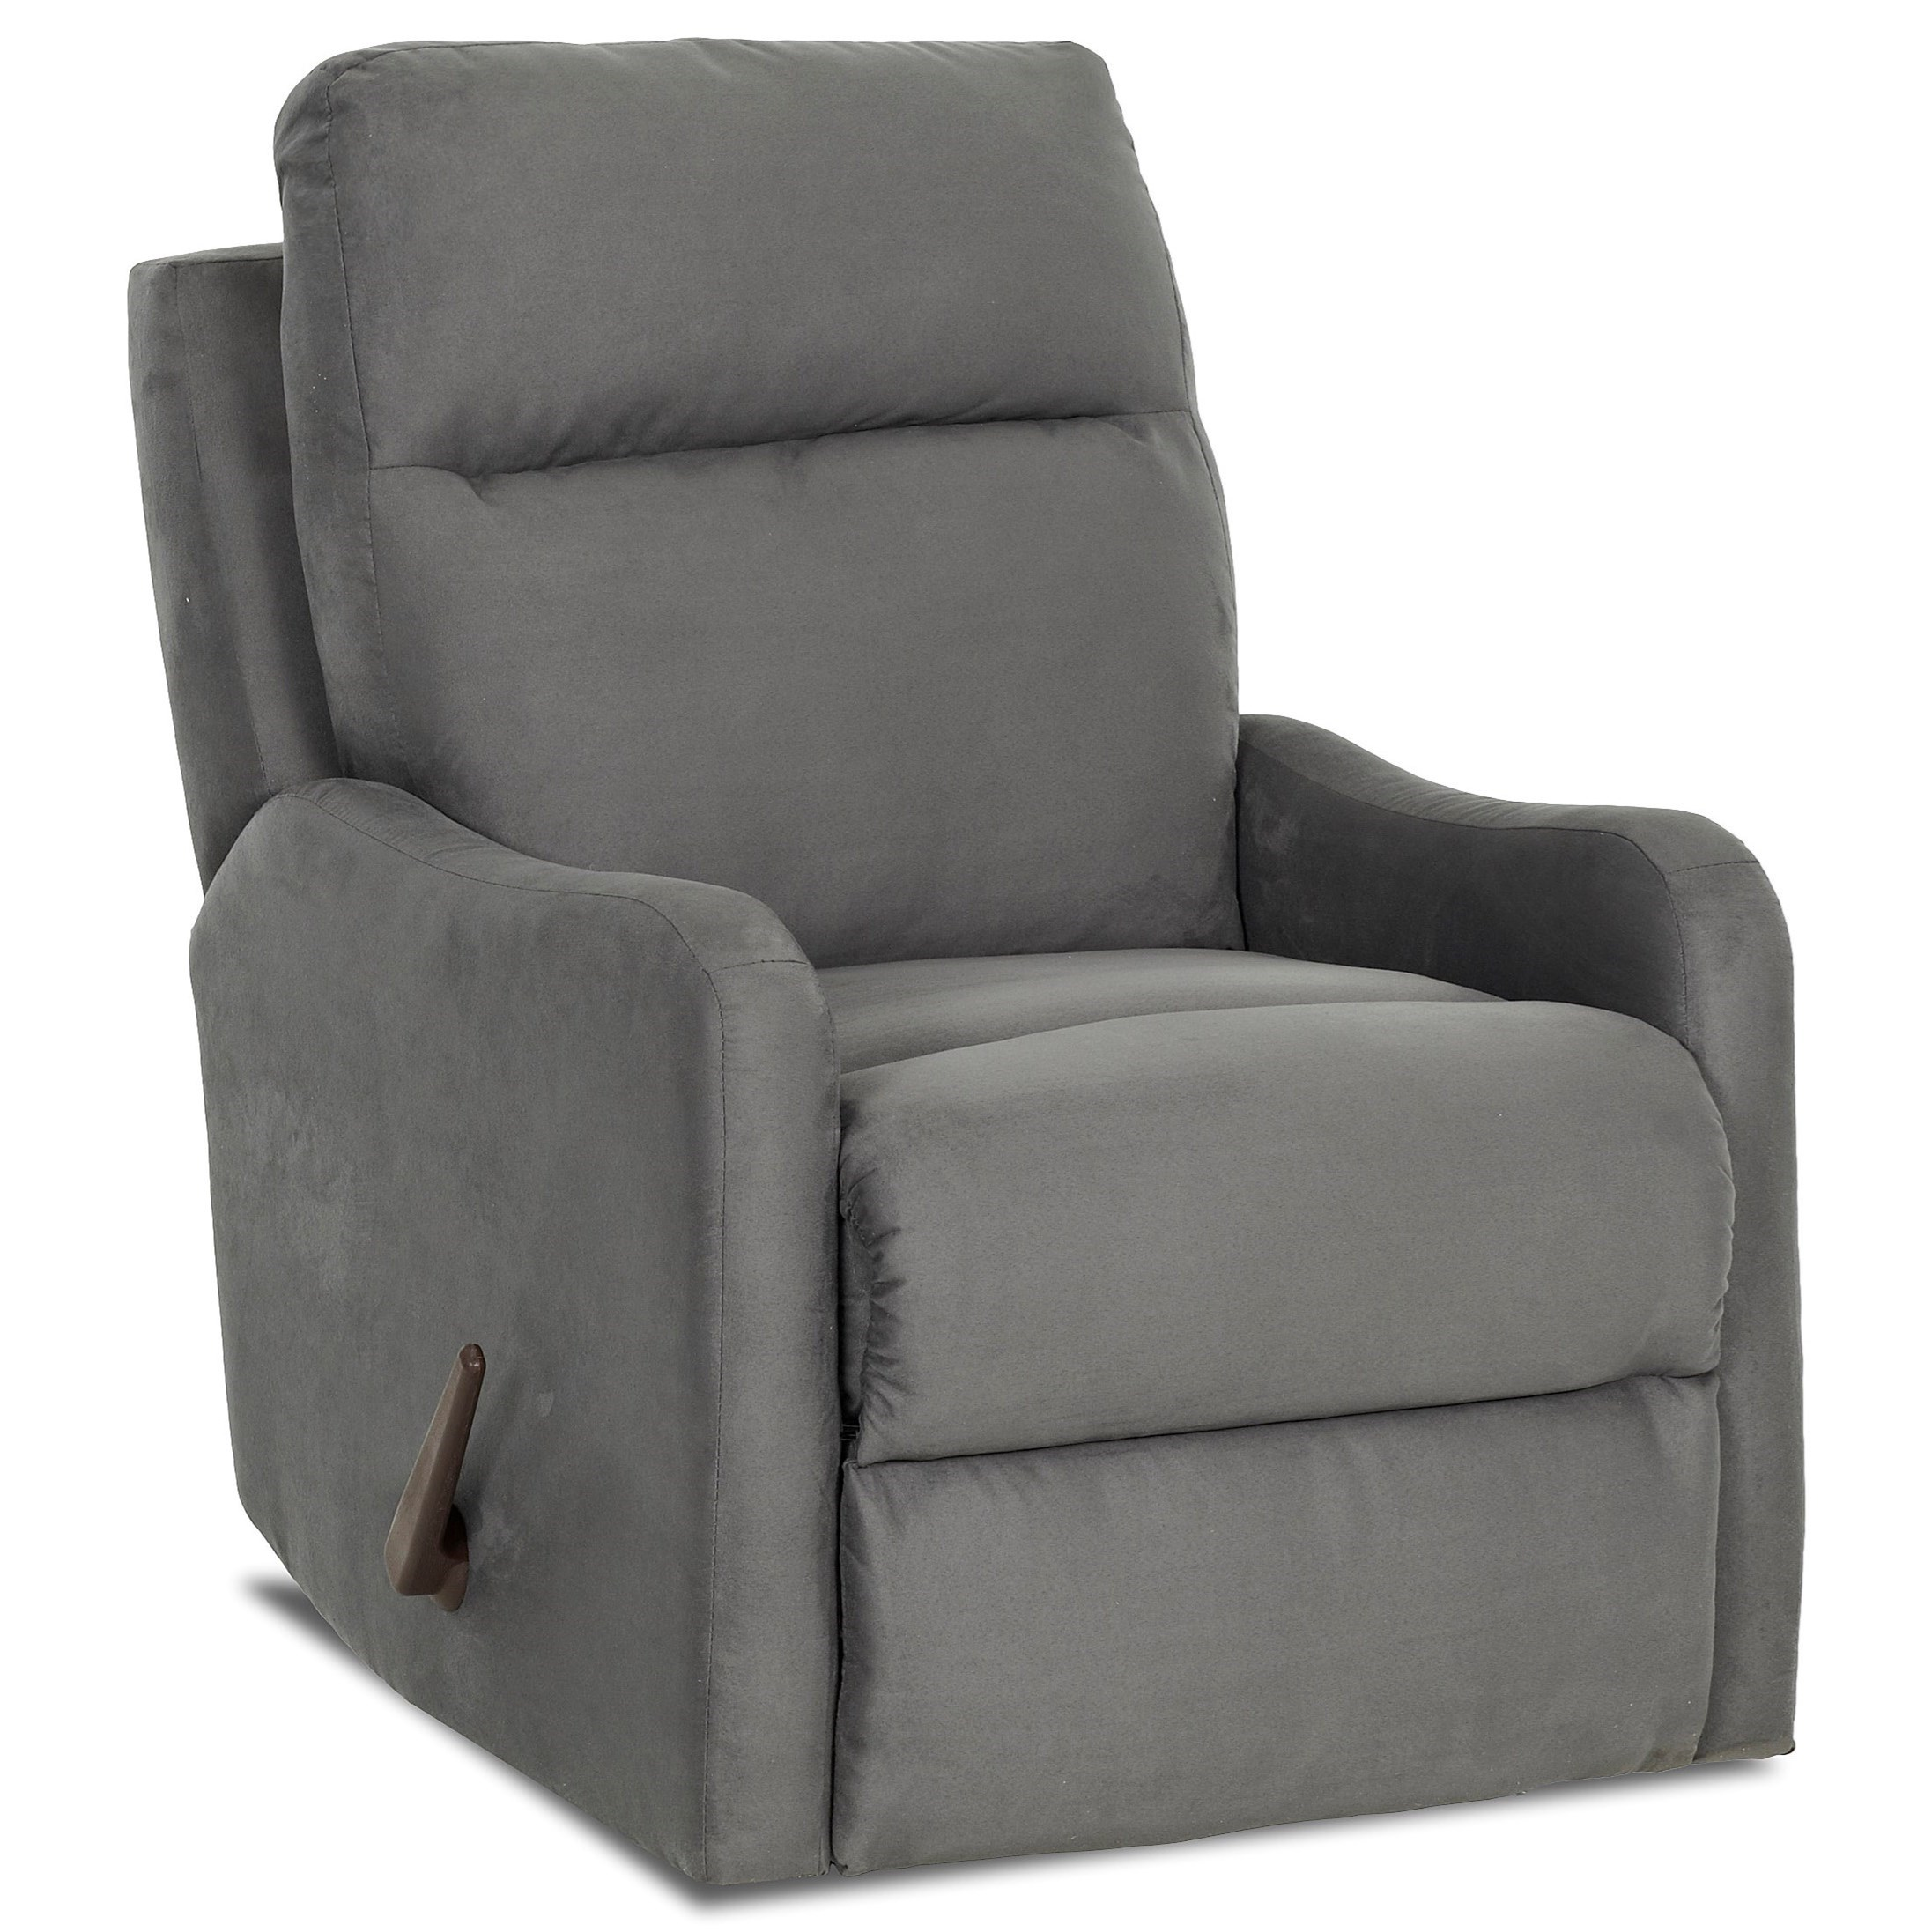 Tacoma Power Swivel Gliding Recliner by Klaussner at Johnny Janosik